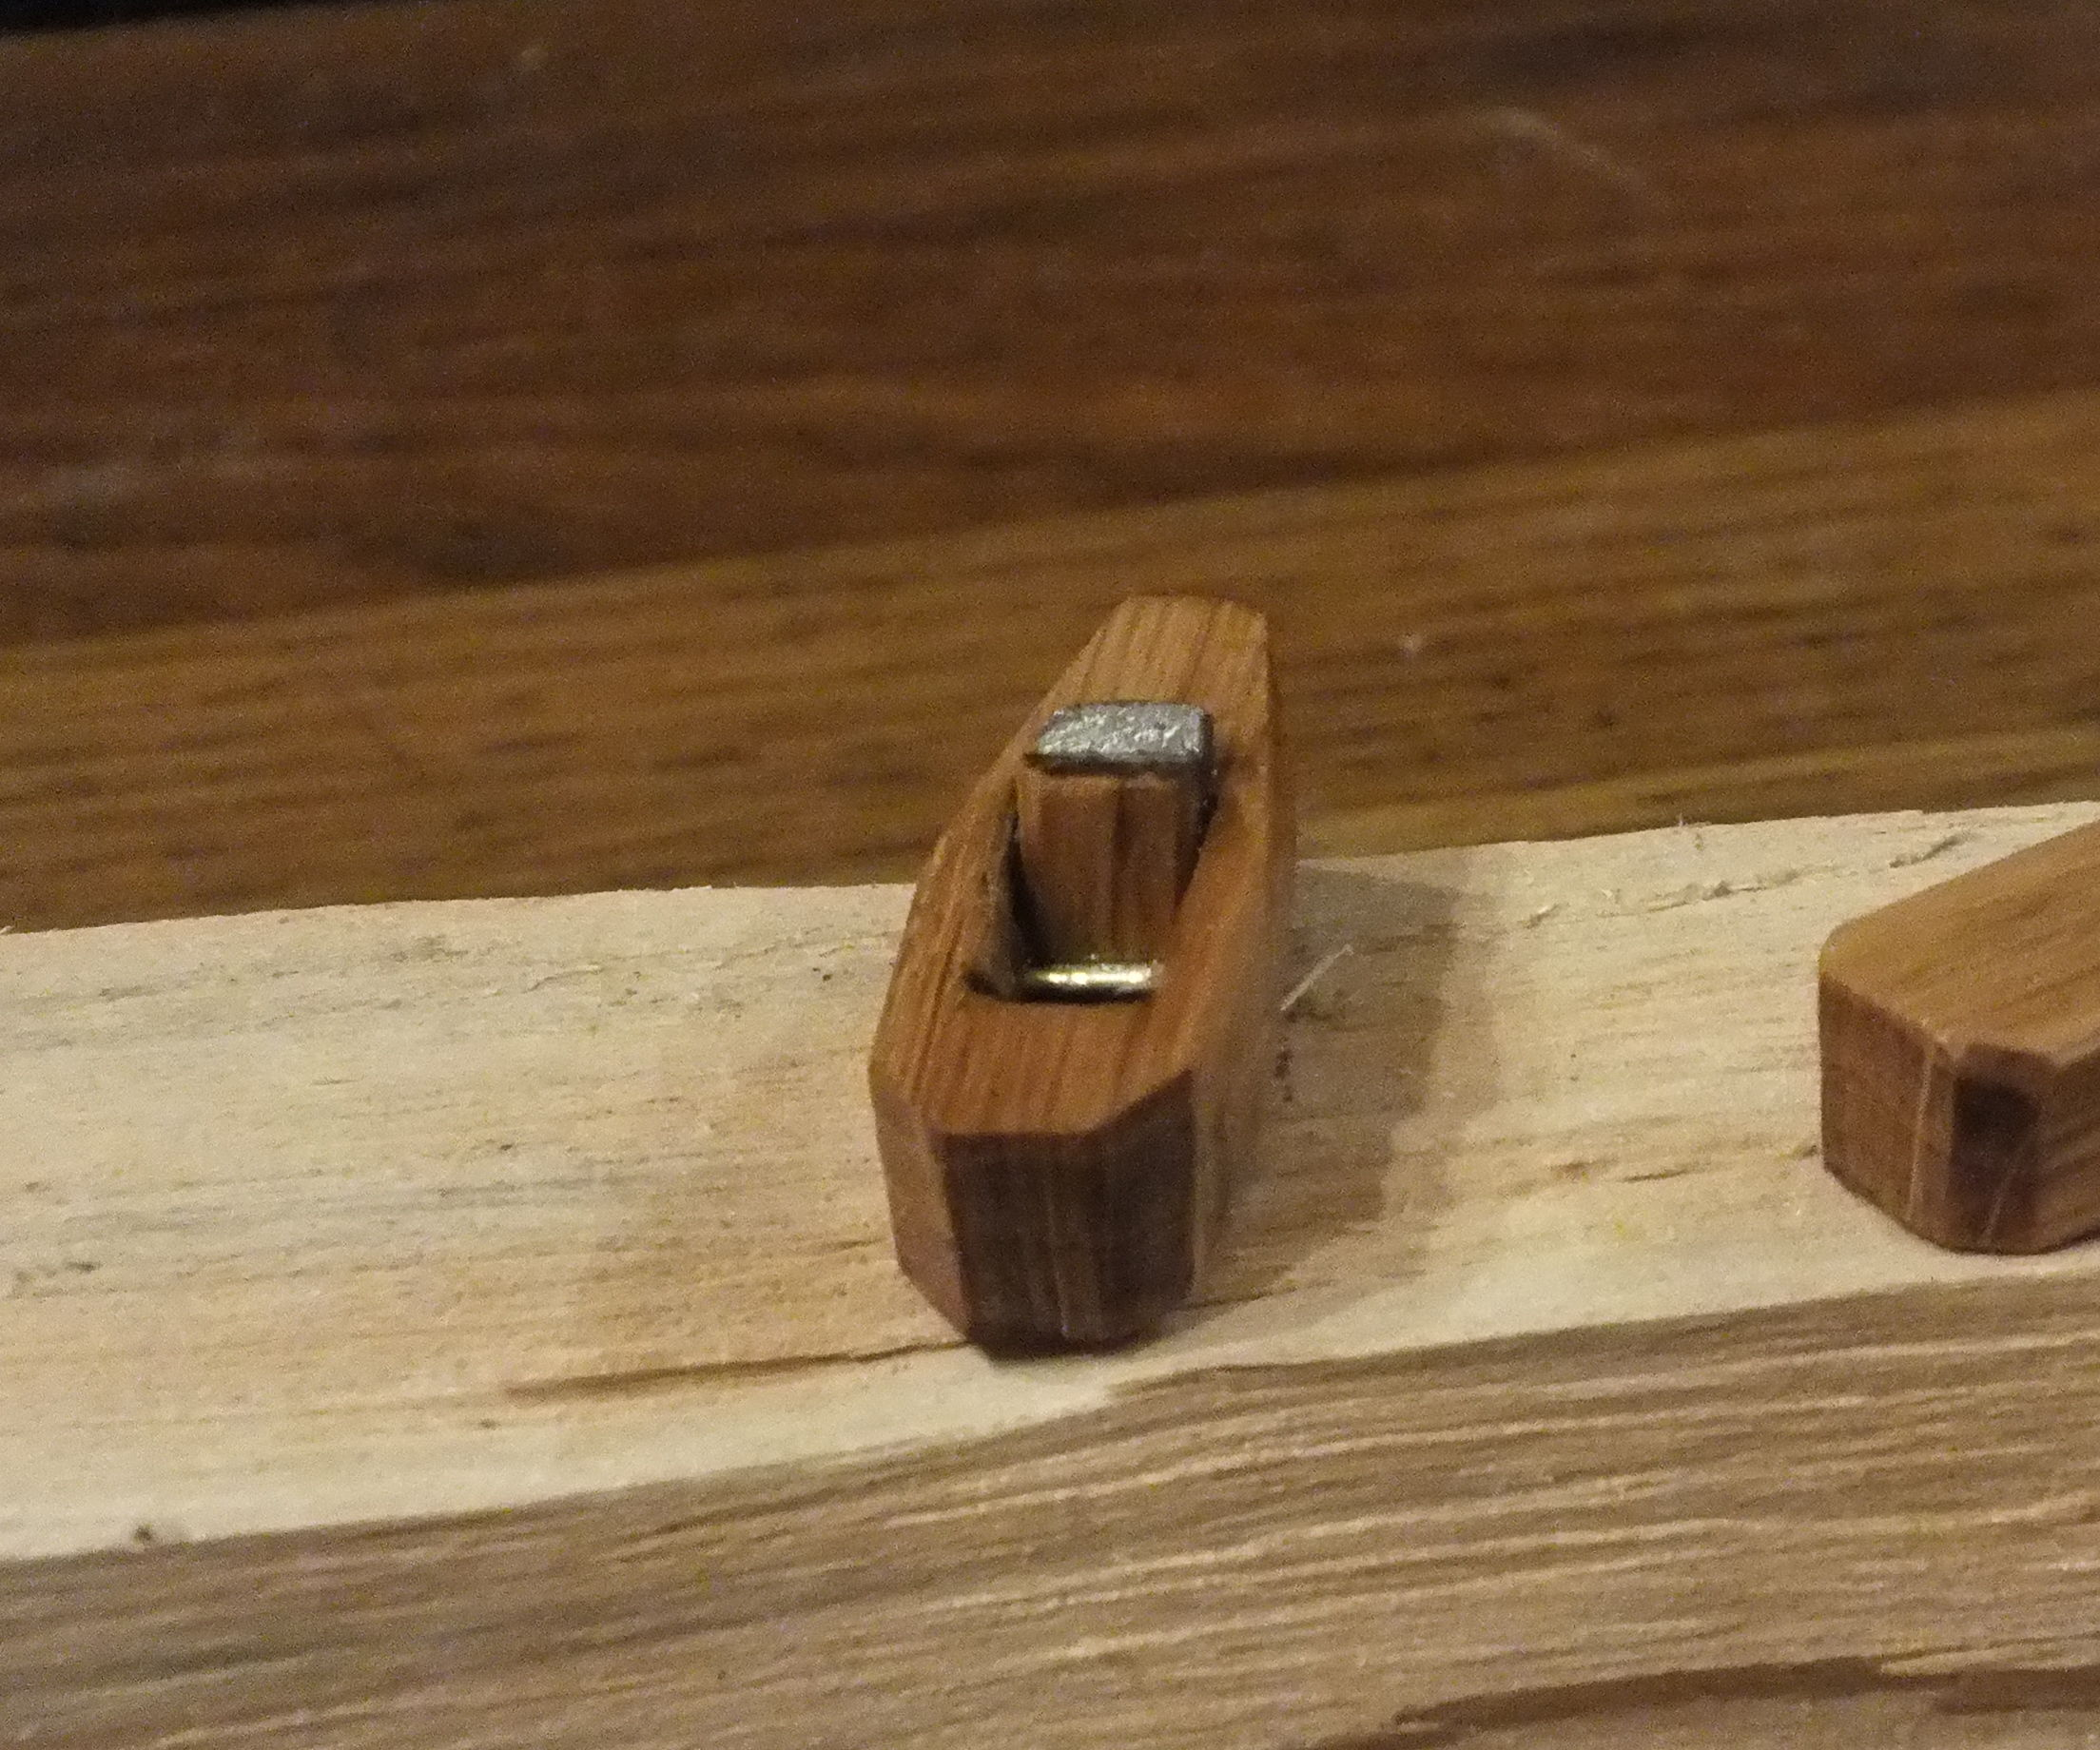 Make a Wooden Hand Plane - Mini Woodworking Project - Pocket Sized Trash to Treasure